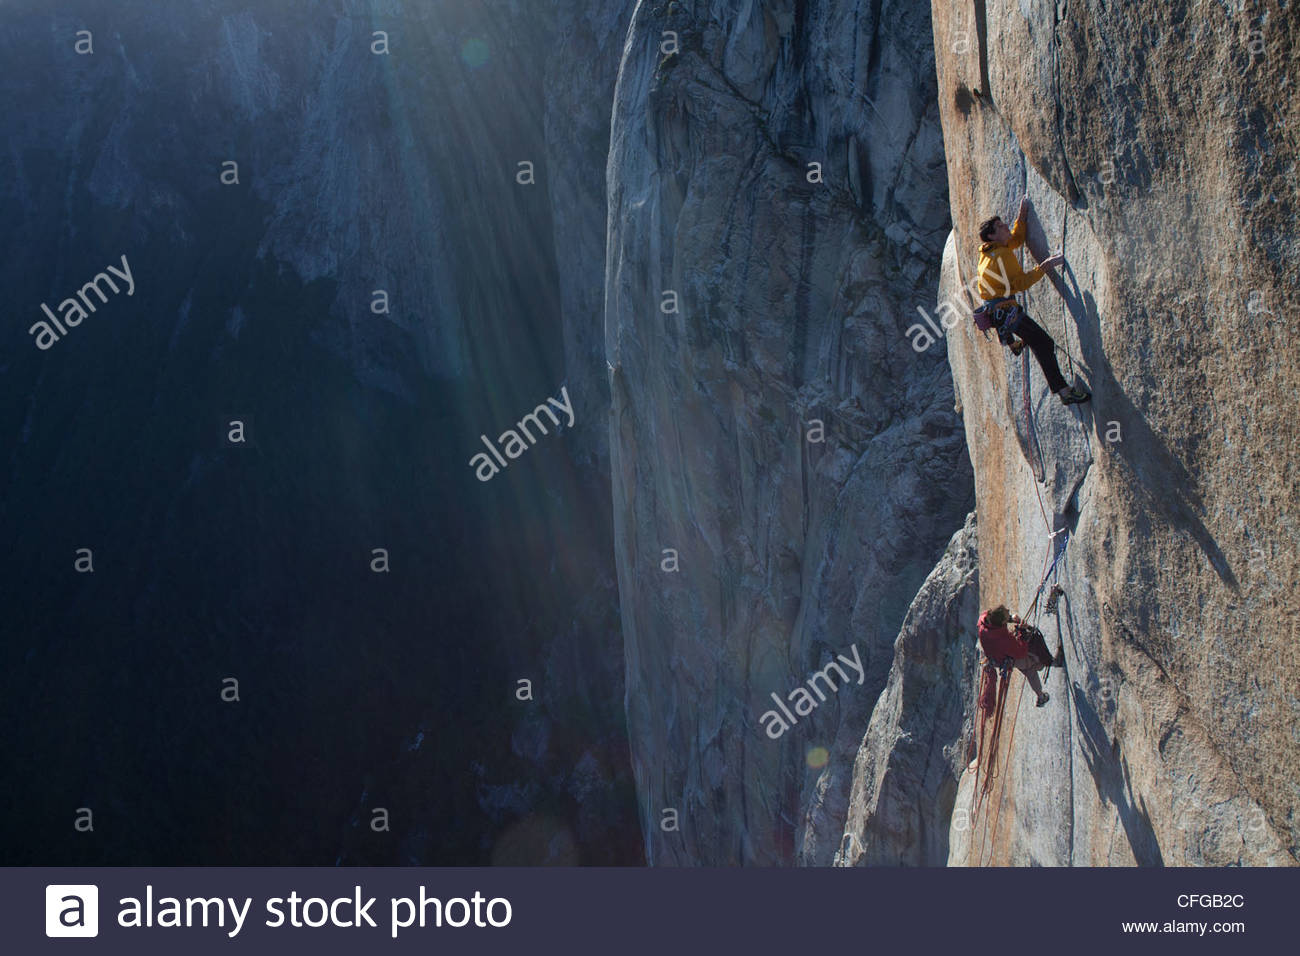 climbers, without ropes, grip an expanse of el capitan stock photo